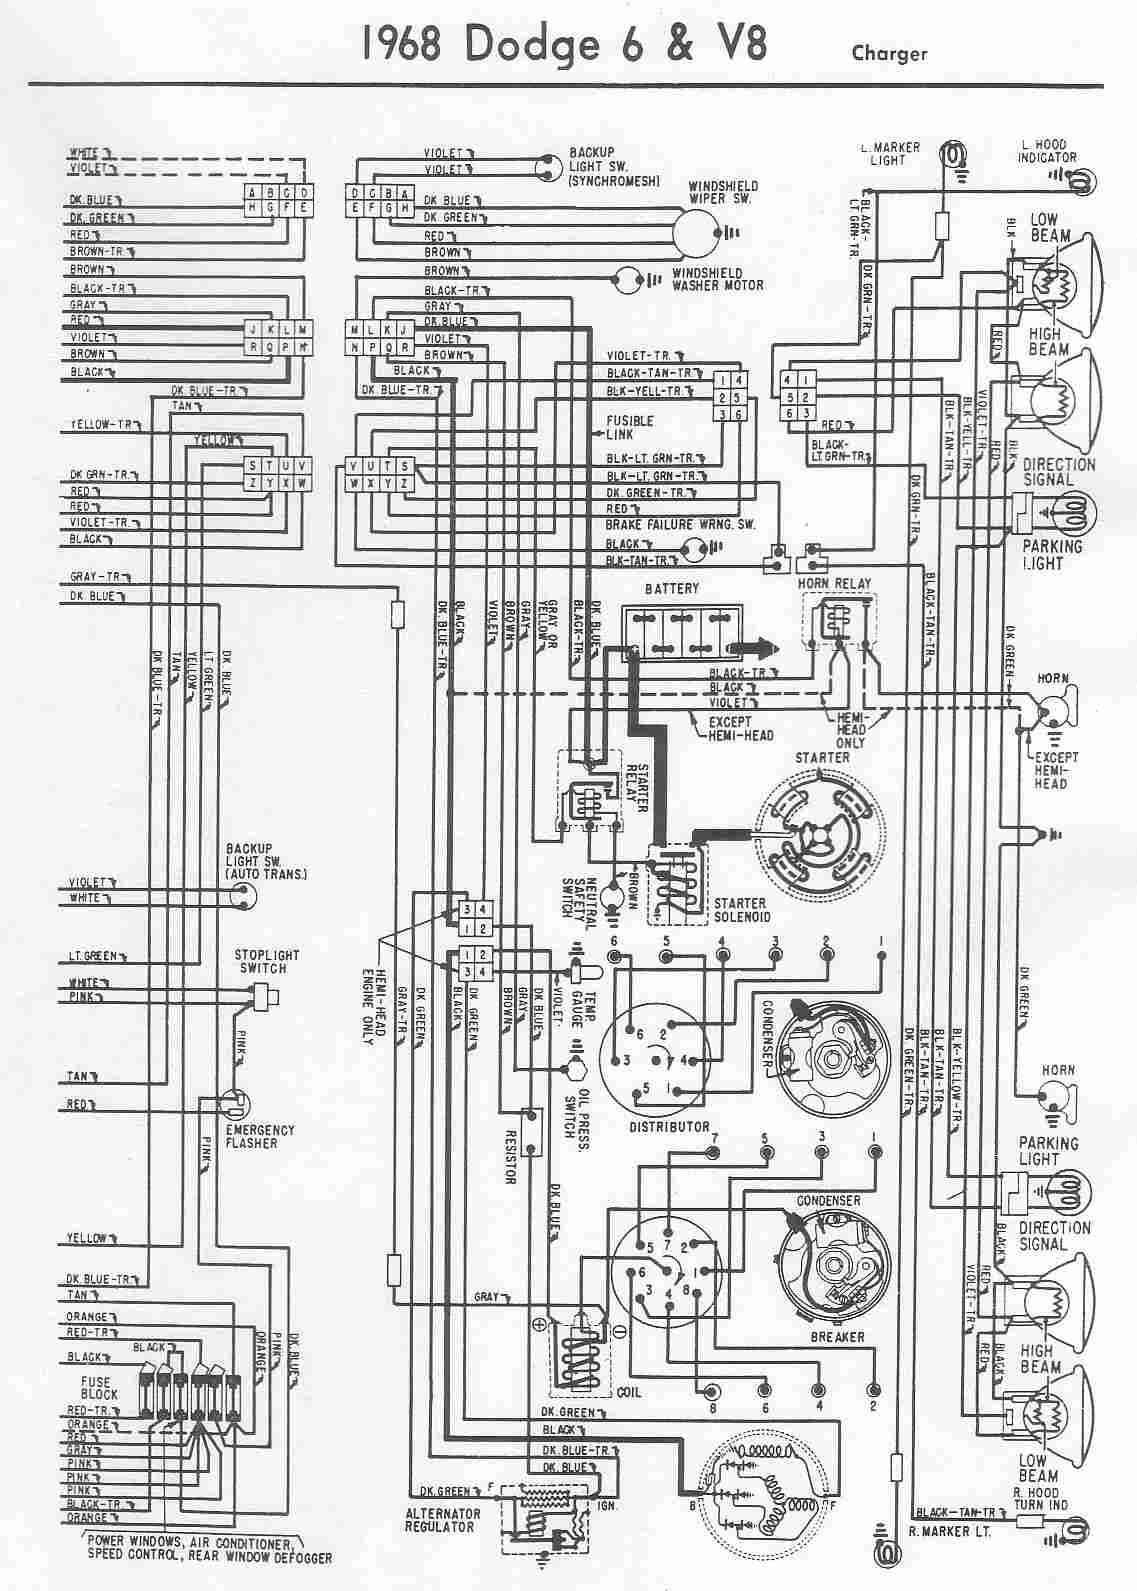 2006 Ford E150 Van Fuse Diagram Free Download Dodge Car Manuals Wiring Diagrams Pdf Fault Codes